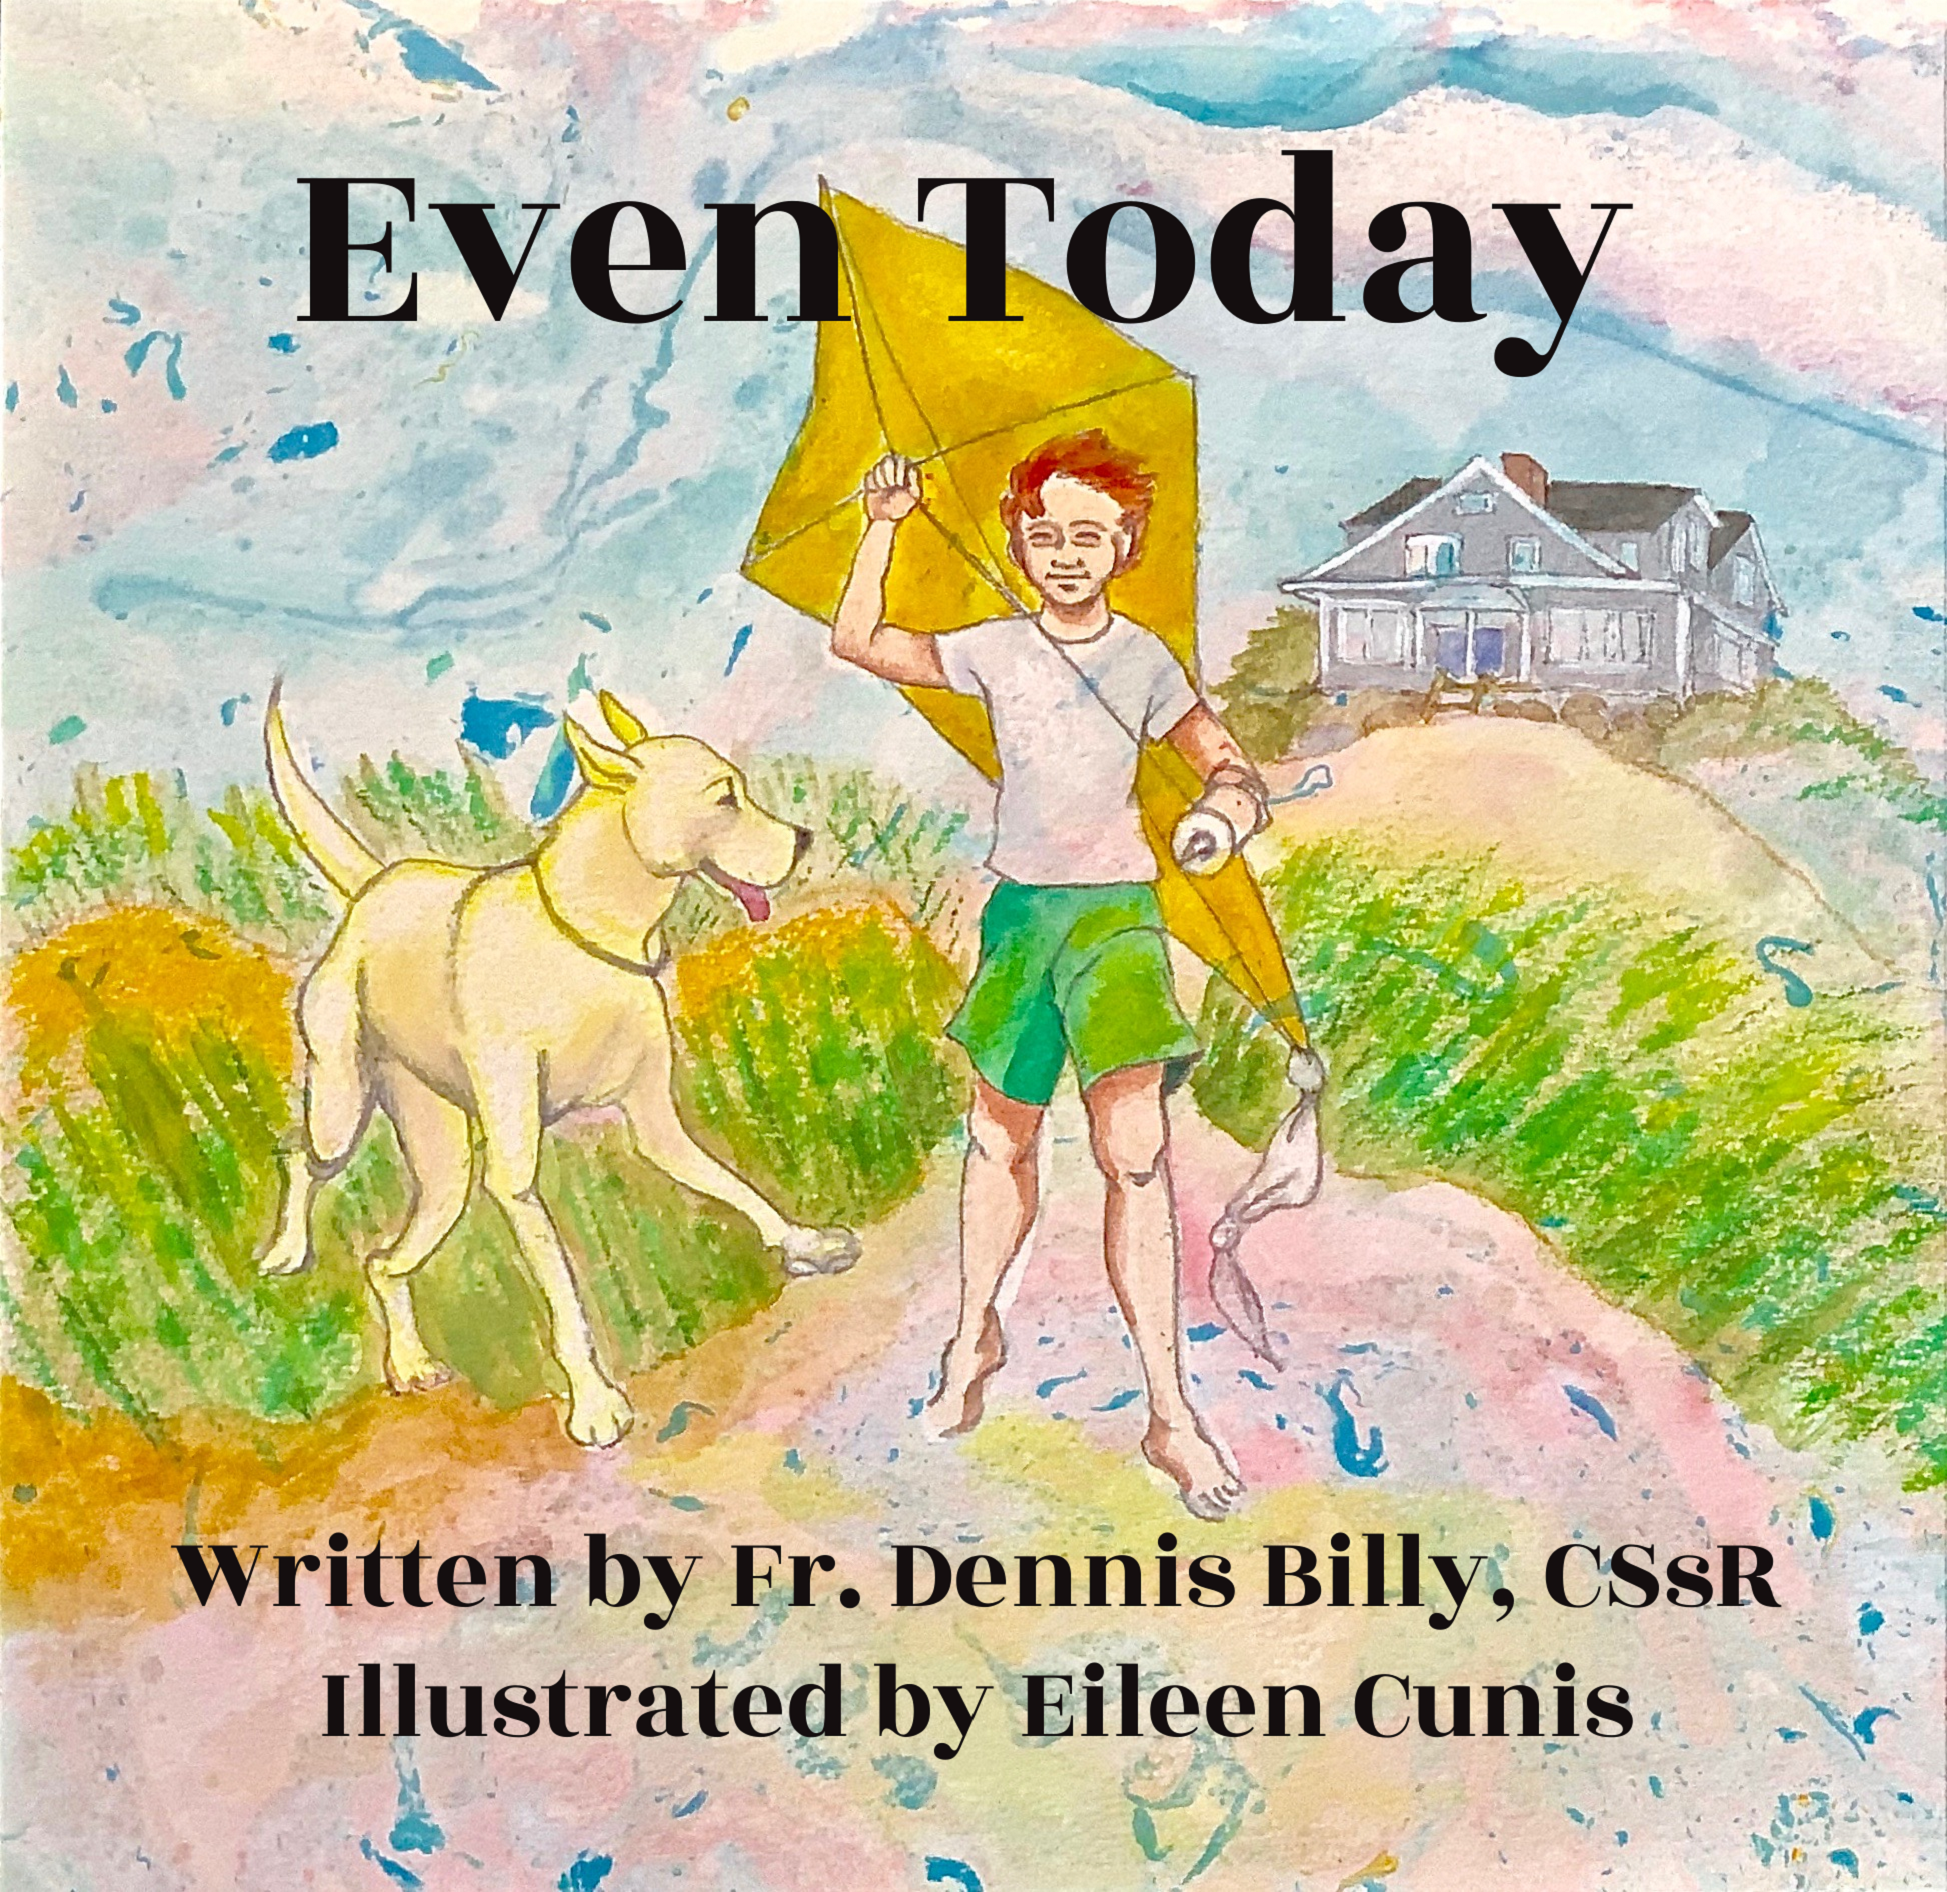 Even Today by Fr. Dennis Billy, CSsR, and illustrated by Eileen Cunis